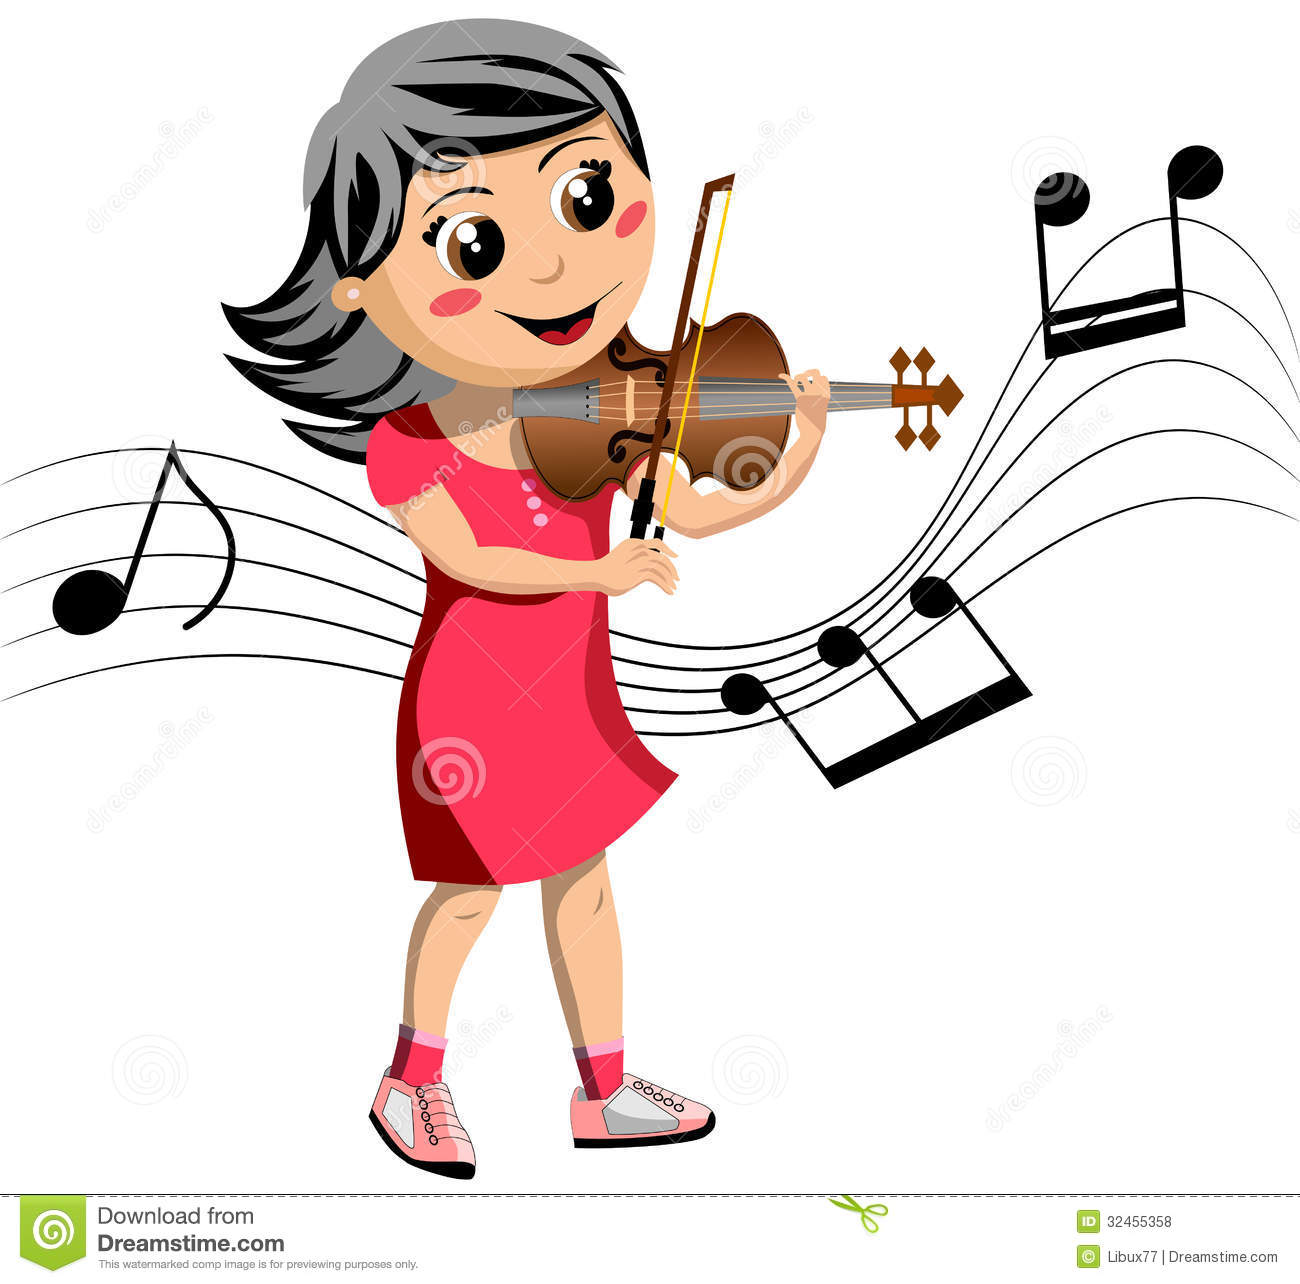 Violinist clipart Panda Free Clipart violinist%20clipart Violinist